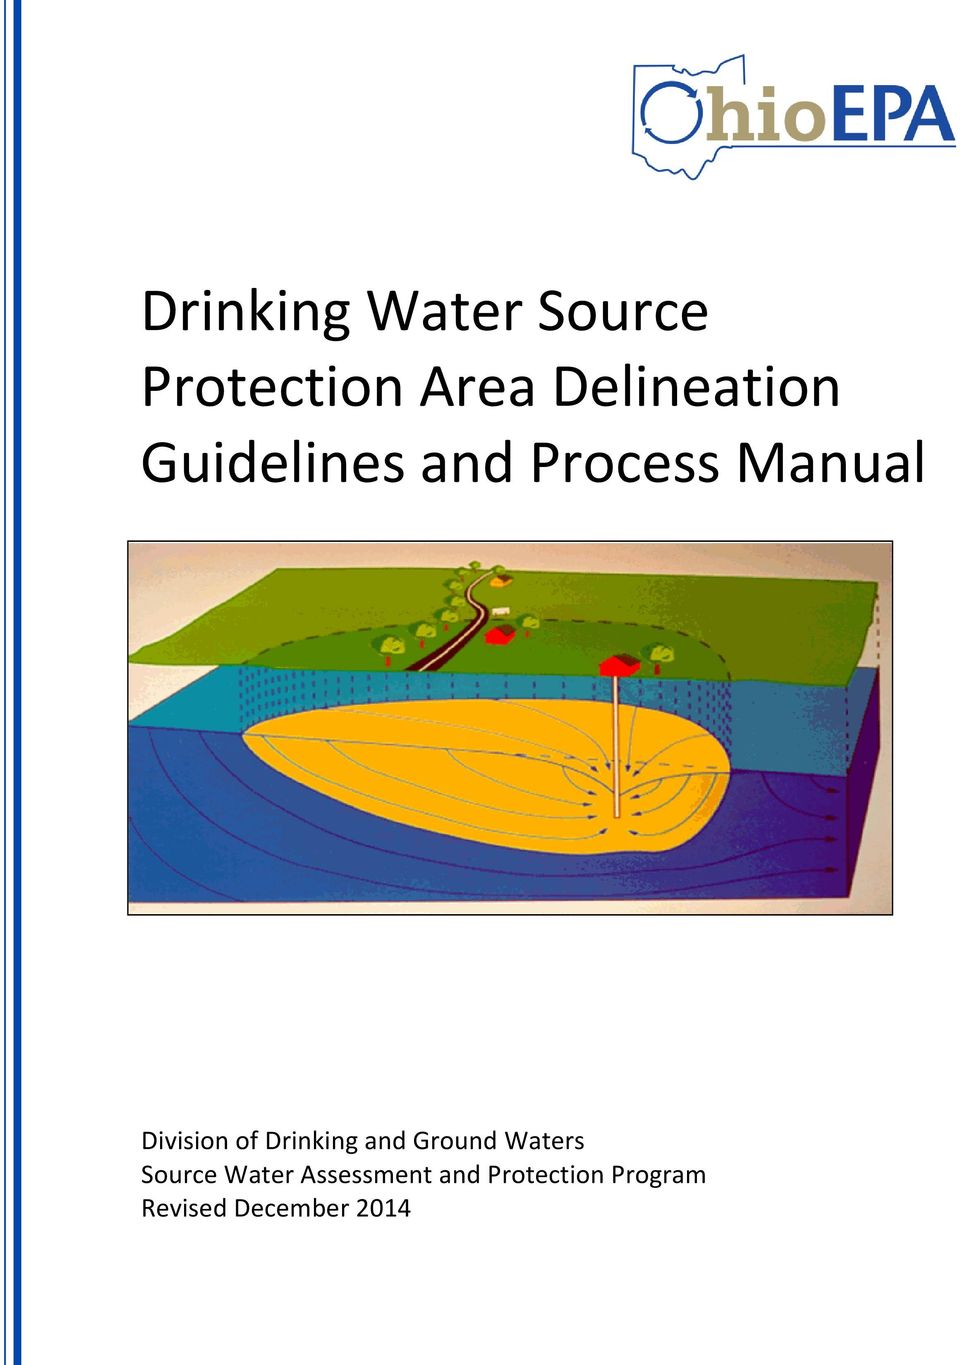 Division of Drinking and Ground Waters Source